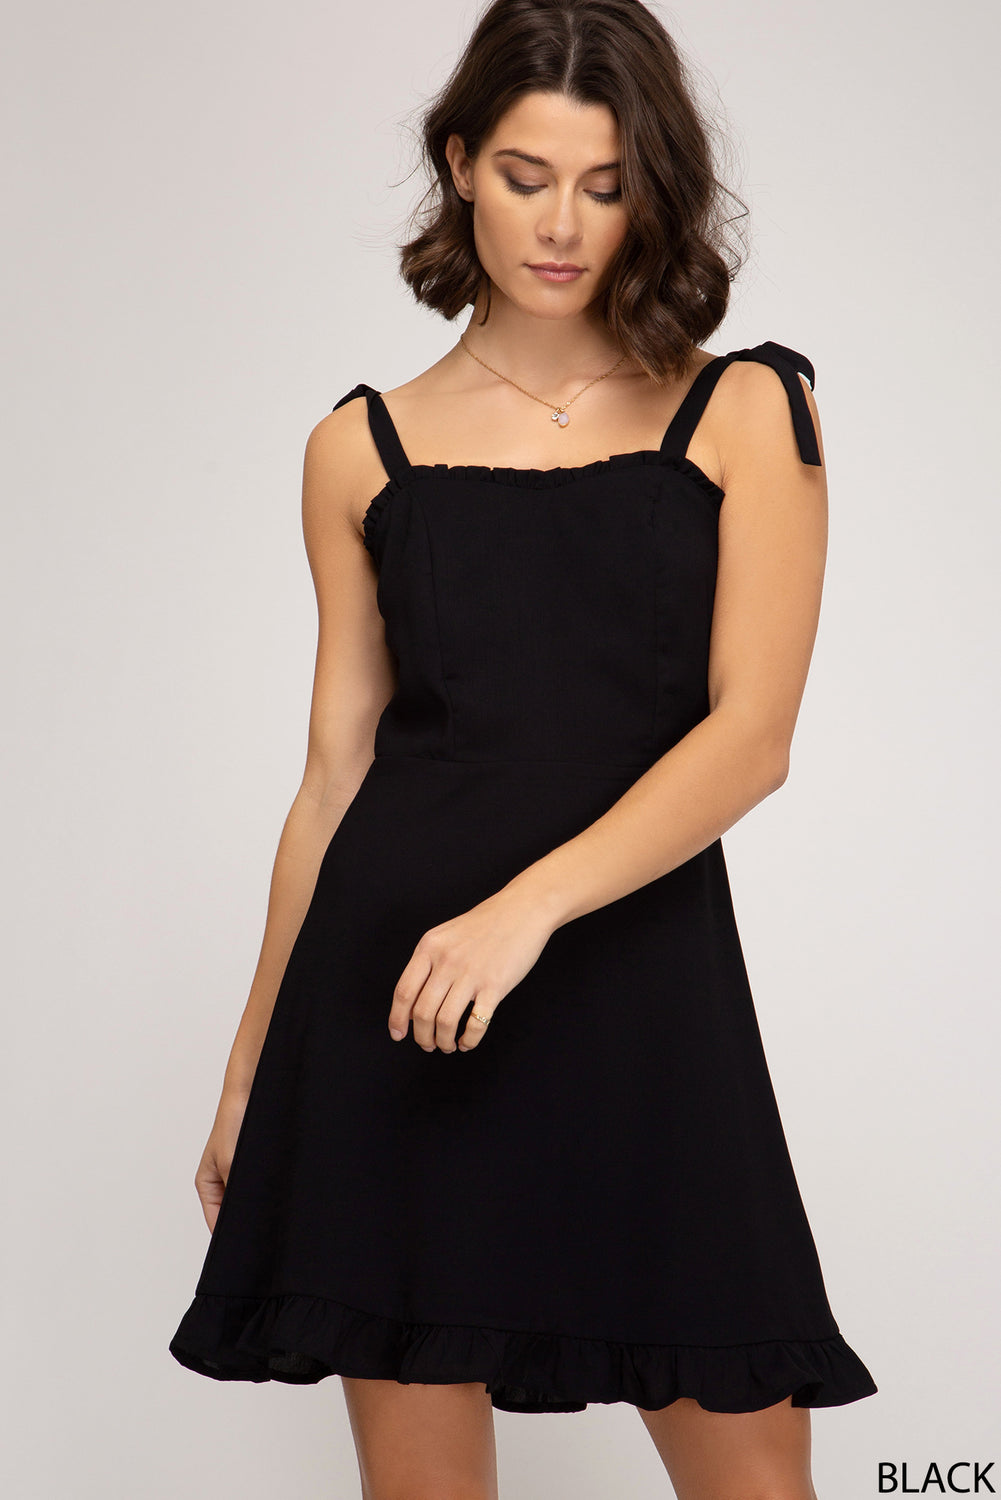 SLEEVELESS WOVEN RUFFLED DRESS WITH SHOULDER TIES